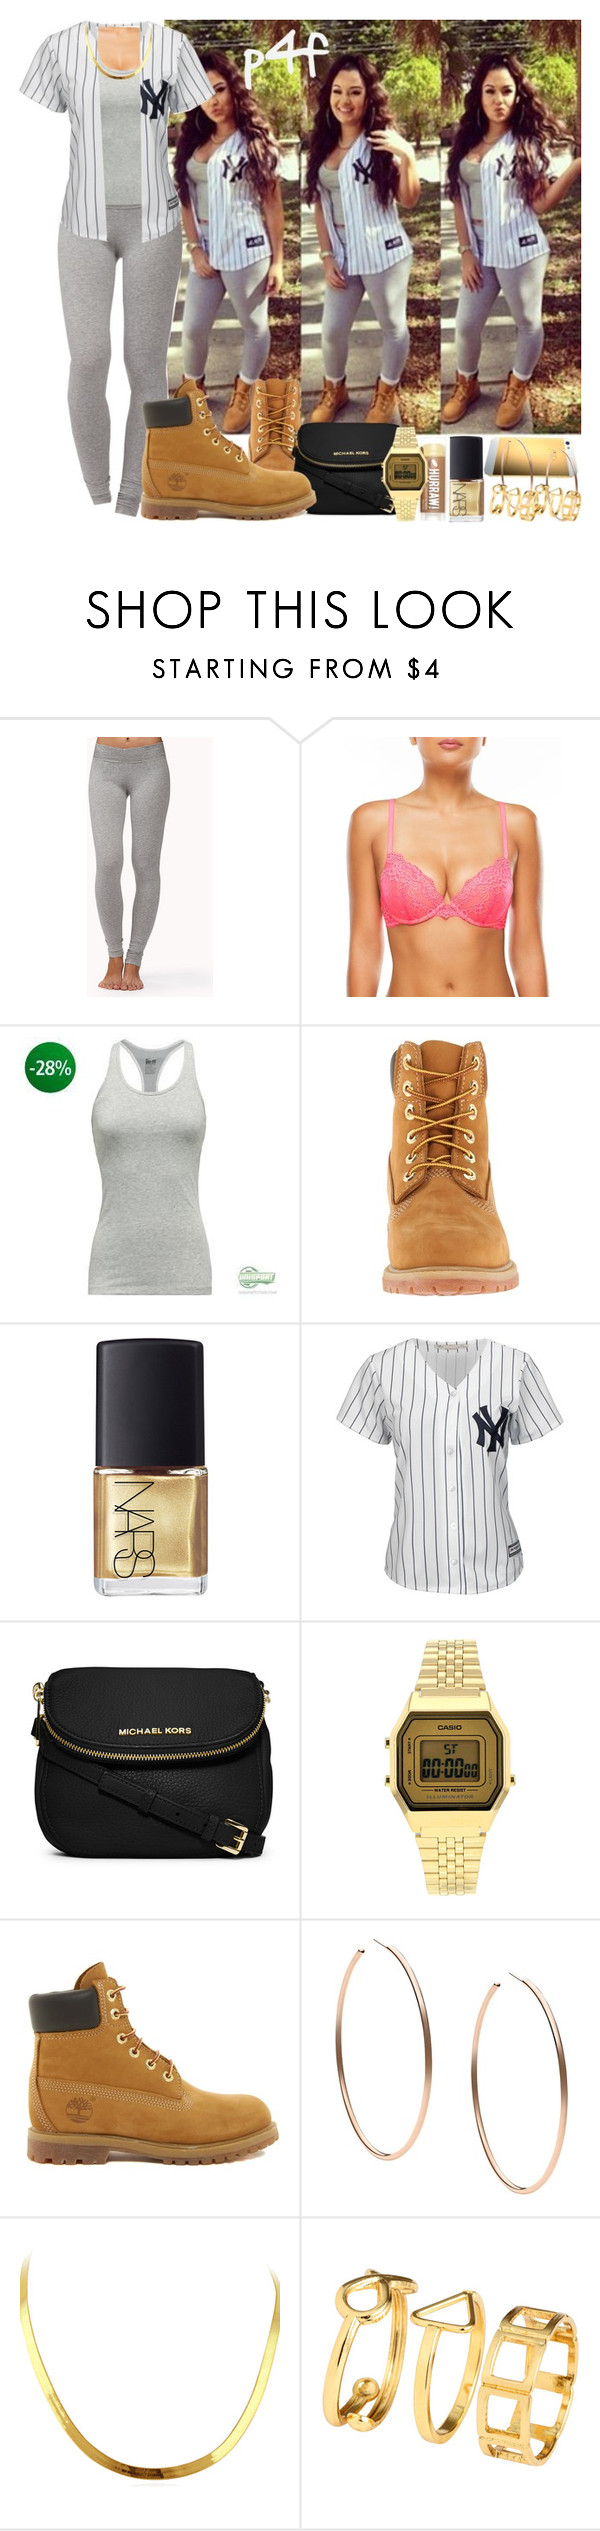 """""""Passion 4Fashion: Clean"""" by shygurl1 ❤ liked on Polyvore featuring Forever 21, NIKE, Timberland, NARS Cosmetics, Majestic, MICHAEL Michael Kors, Topshop, Michael Kors and H&M"""